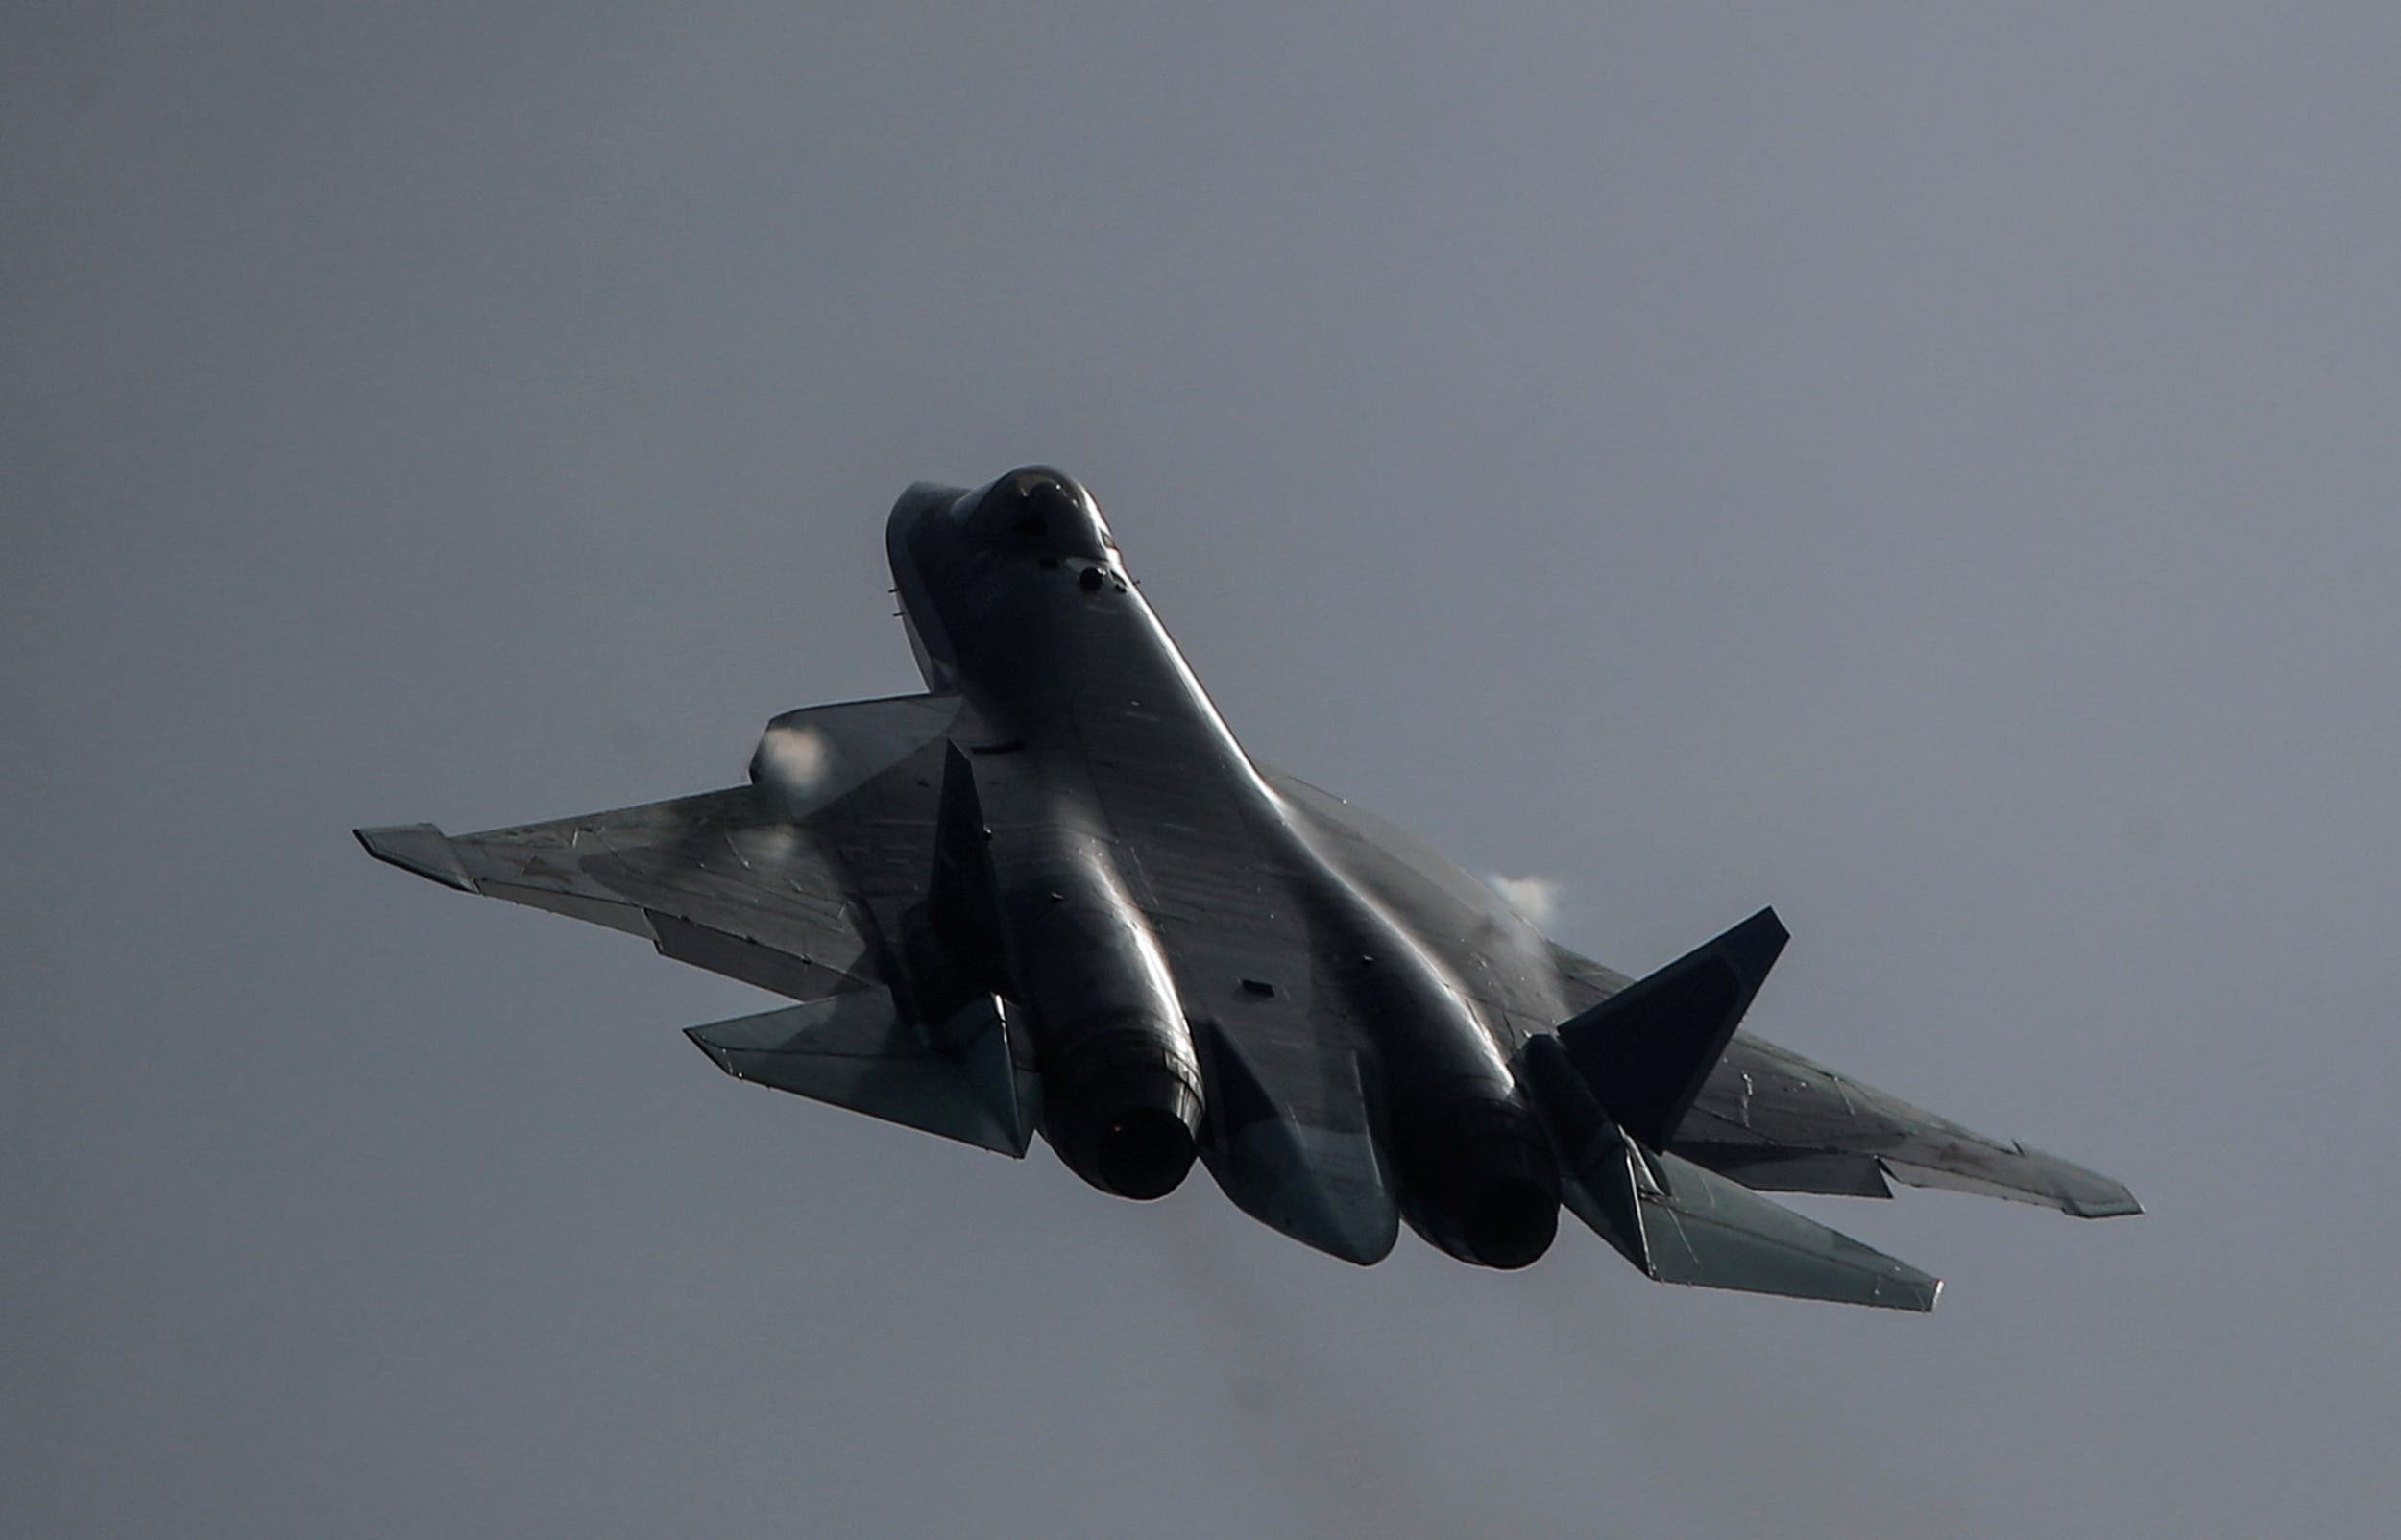 A new Russian fighter… and ambiguity about its specifications and capabilities